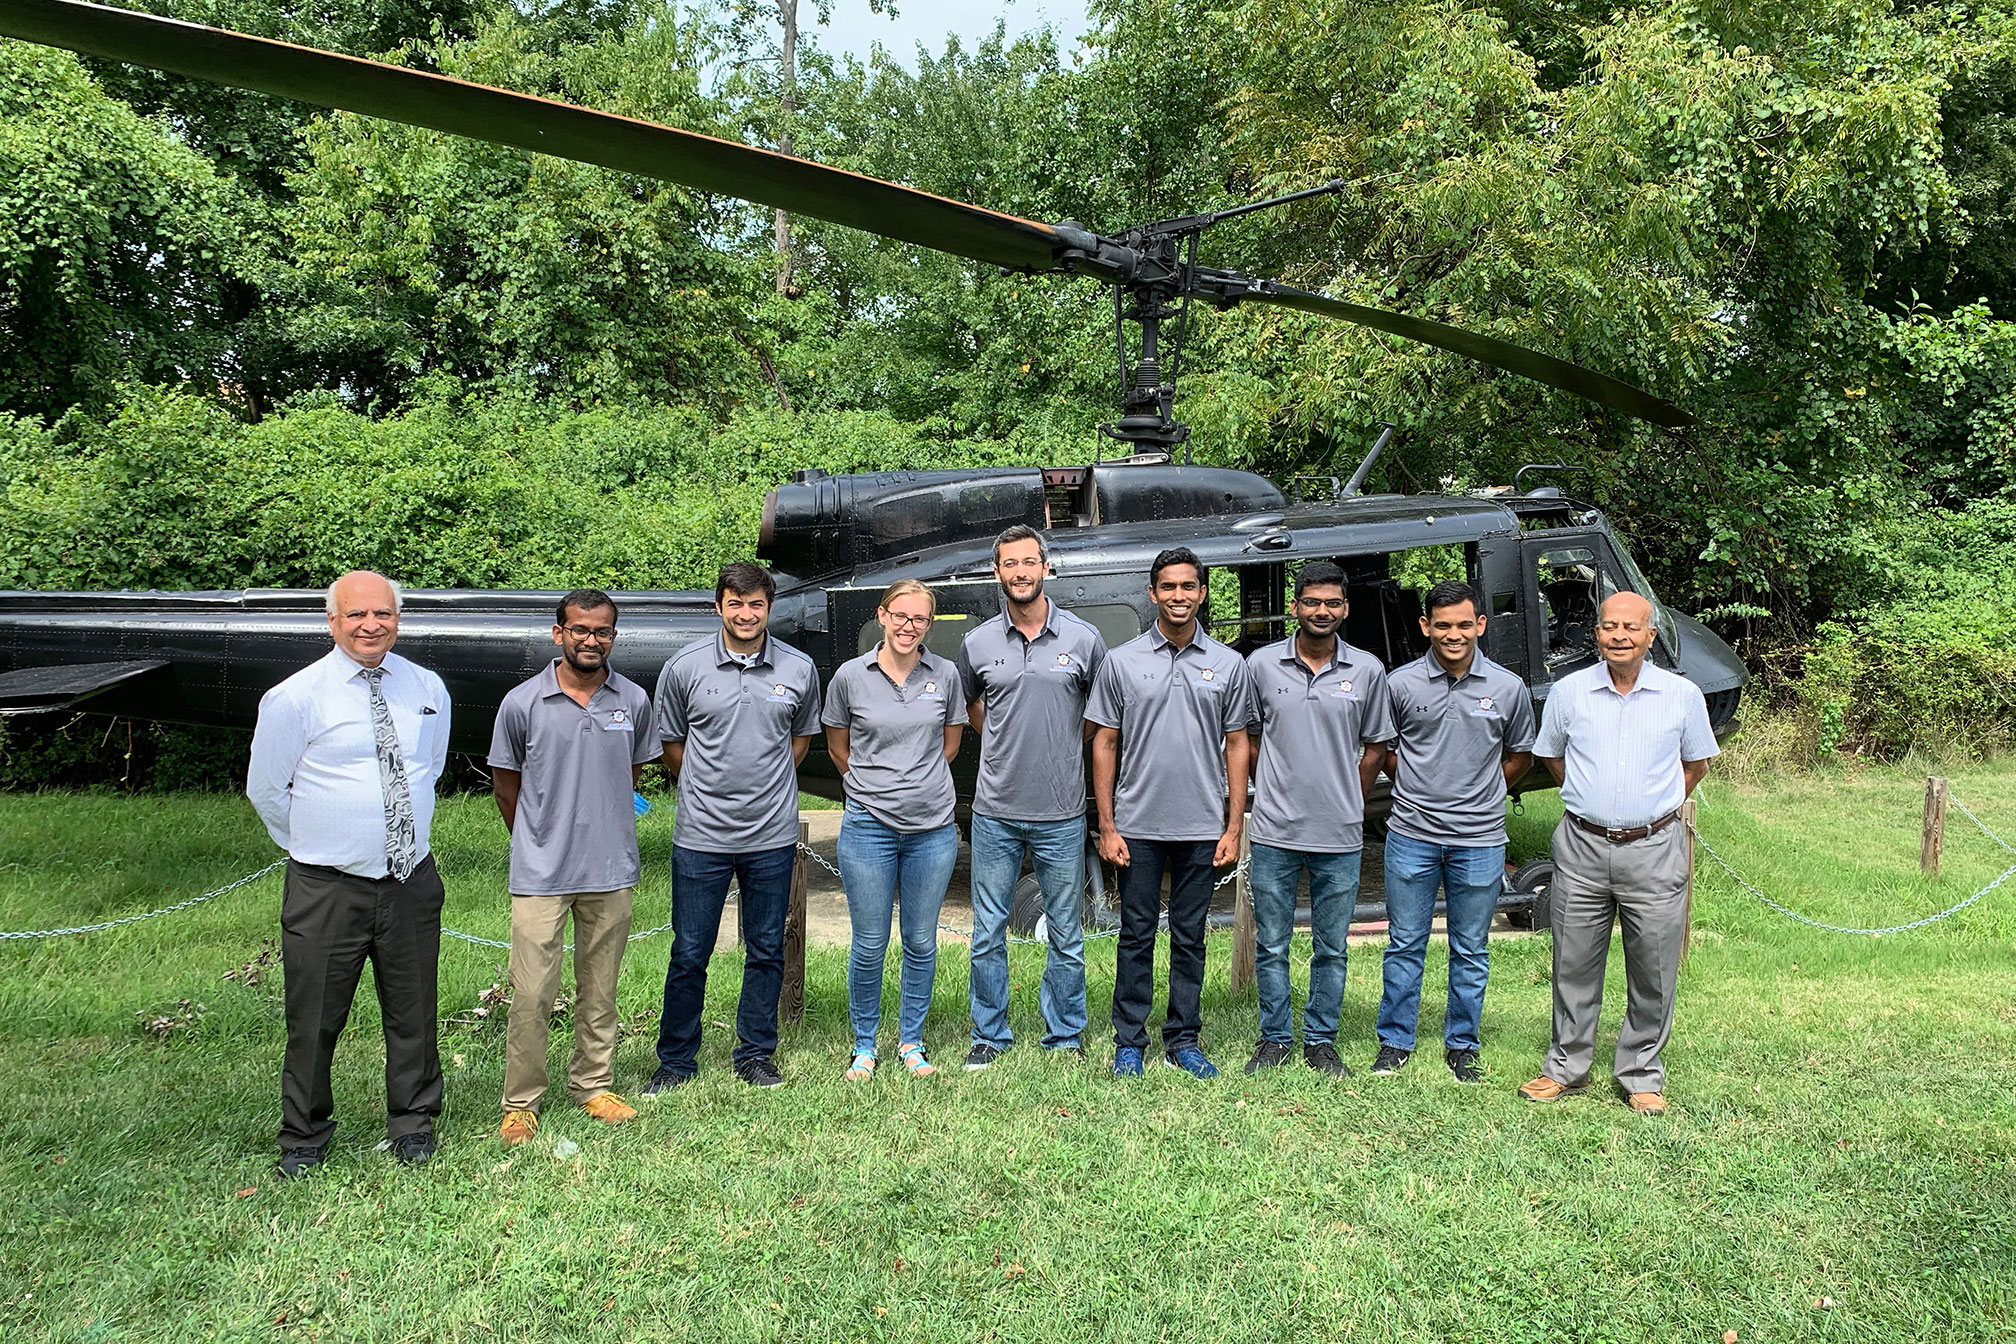 This year's graduate rotorcraft design team (from left to right: Dr. Inderjit Chopra, Abhishek Shastry, Ravi Lumba, Amy Morin, Seyhan Gul, Mrinalgouda Patil, Shashank Maurya, Nishant Nemani, and Dr. Vengalattore Nagaraj)